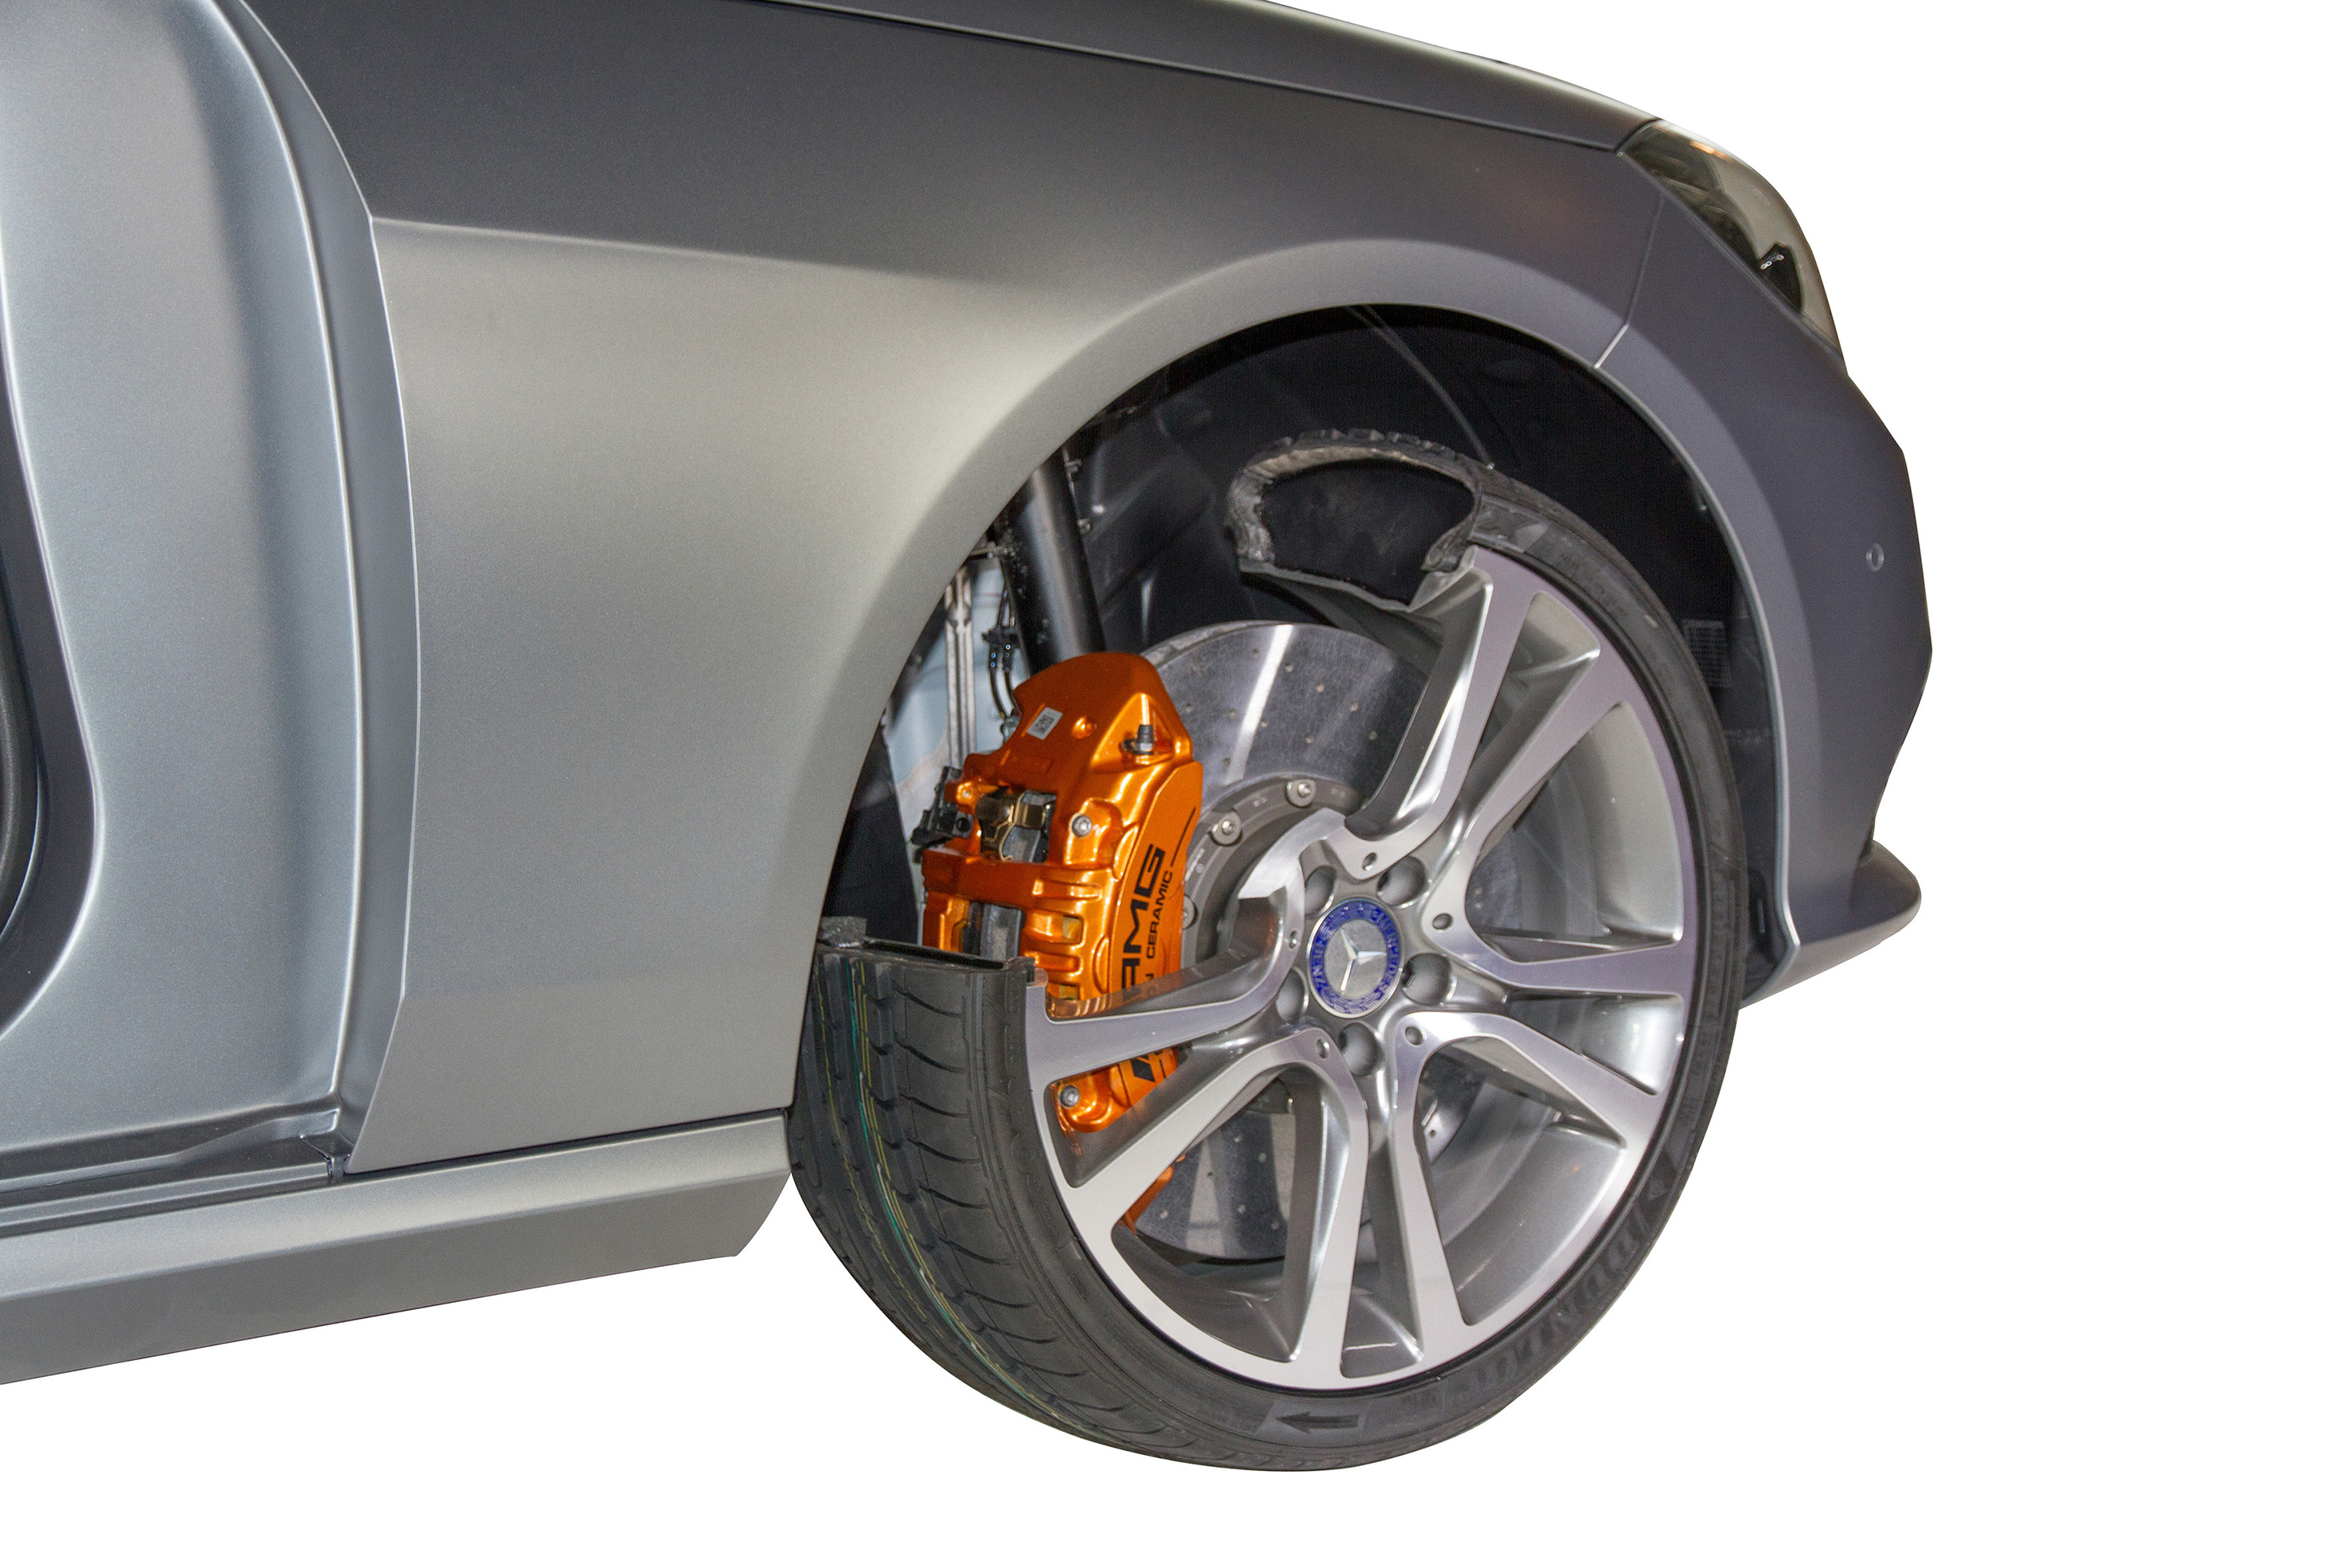 Using Car Brakes : Find out about the type of brakes used in your car